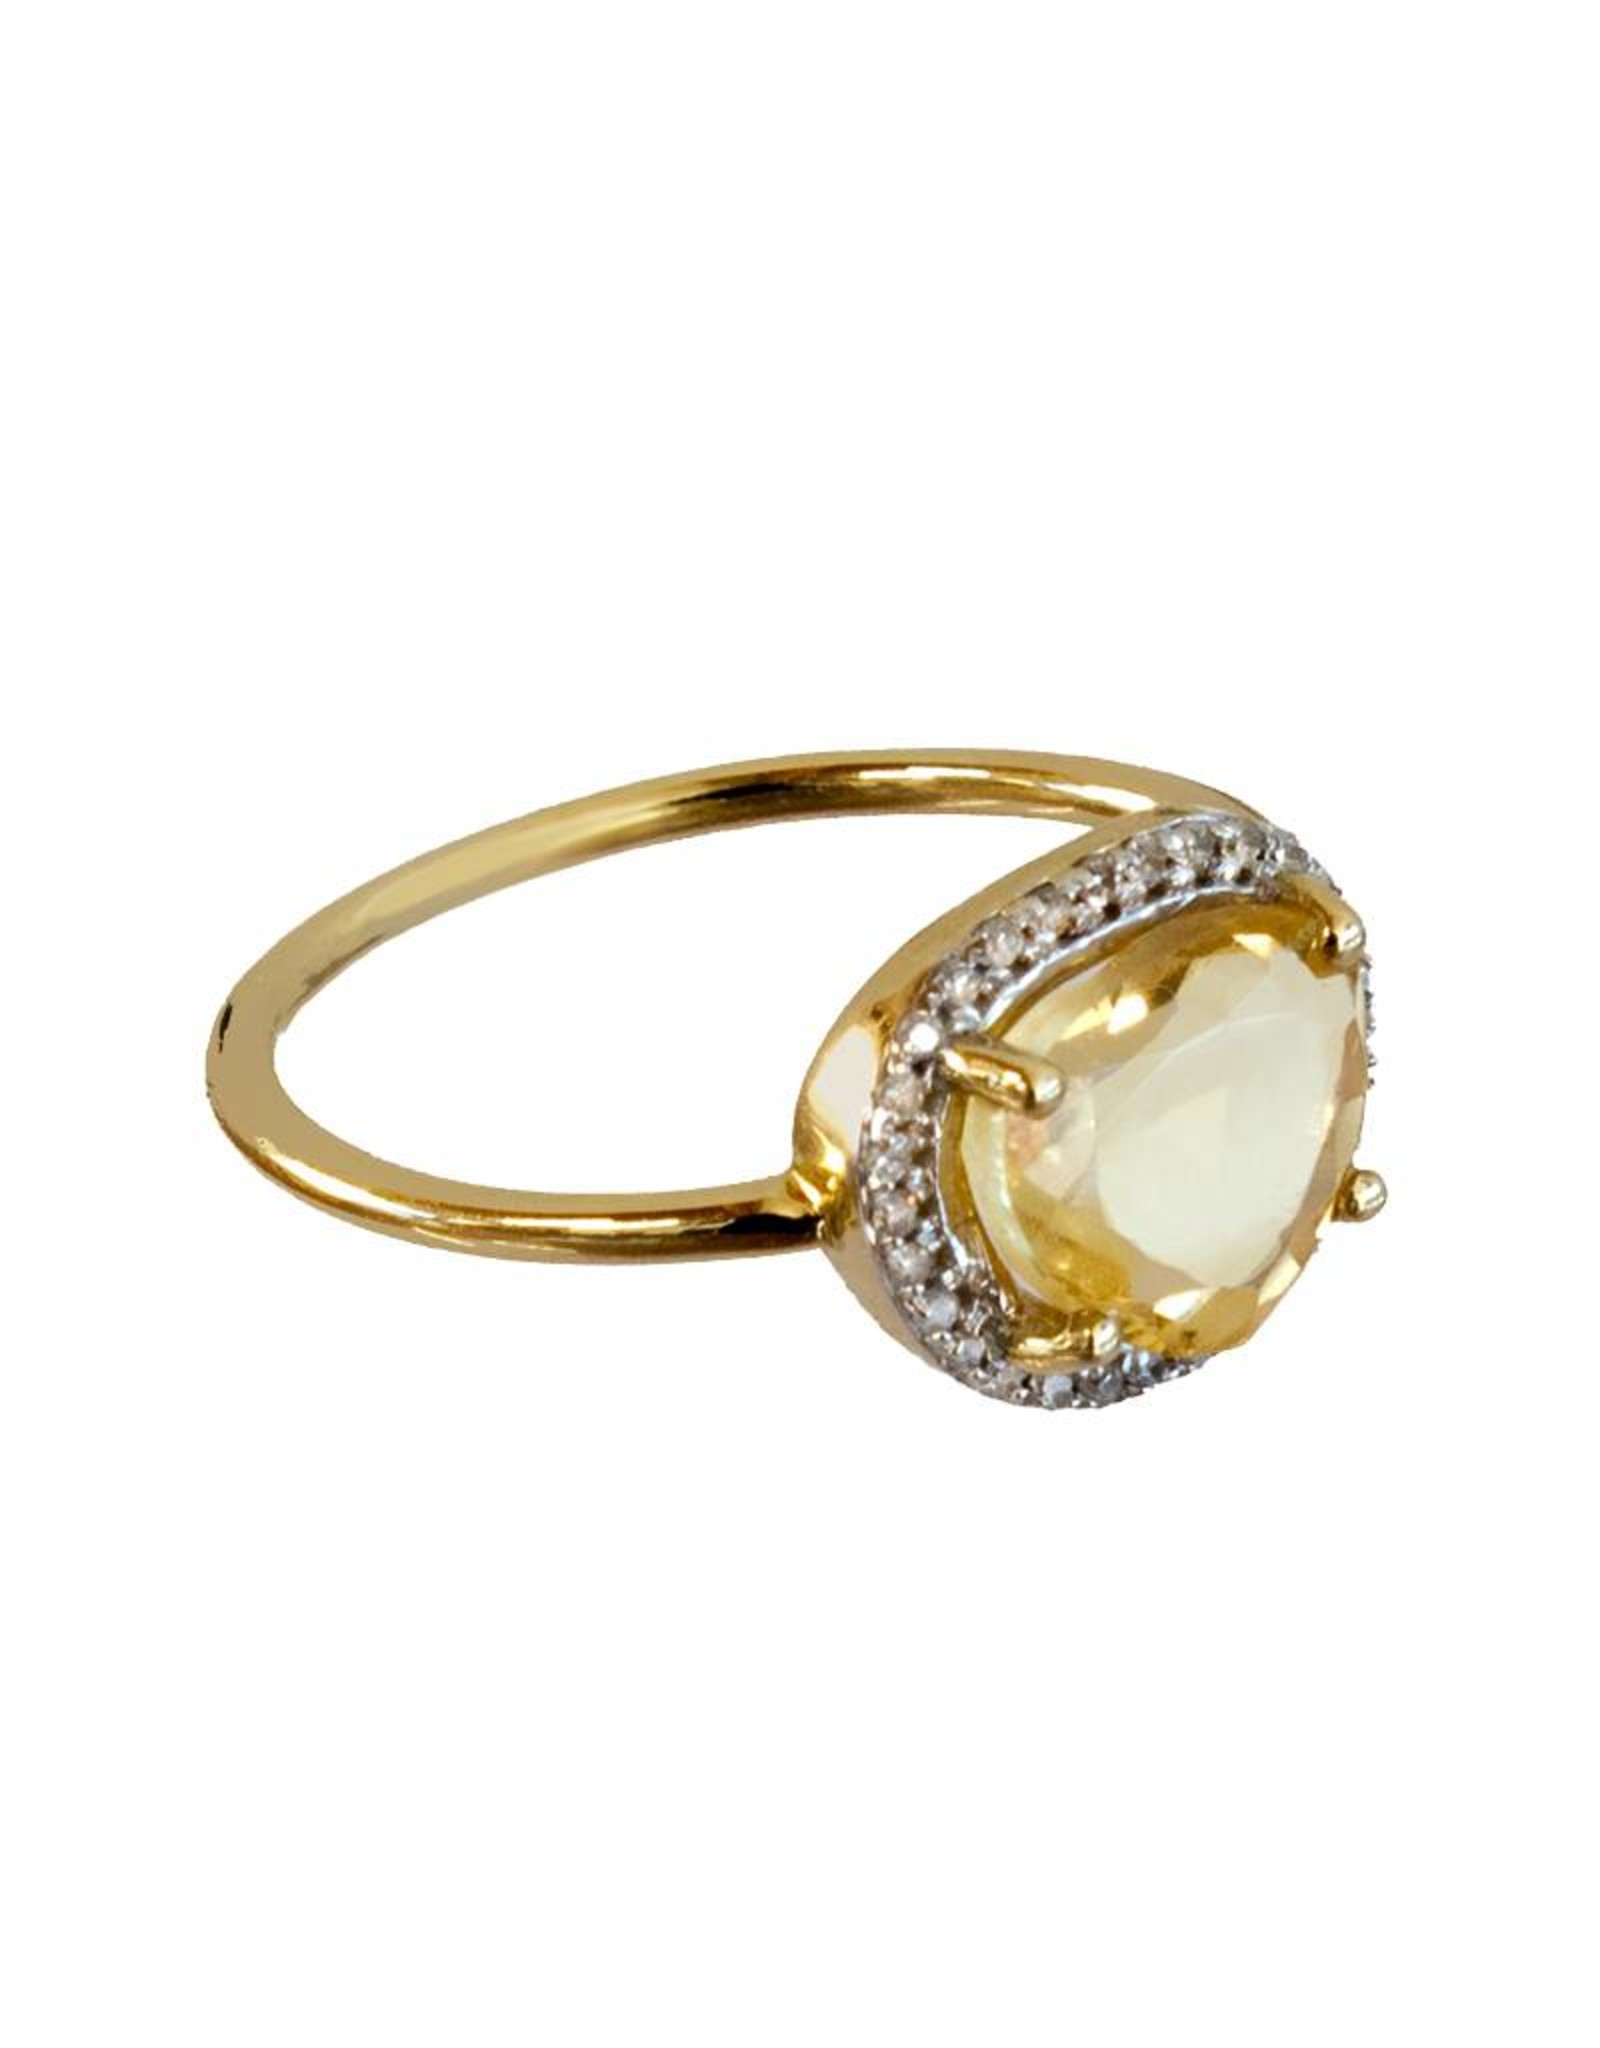 Bo Gold Ring - Goud - Citrien - Diamantjes